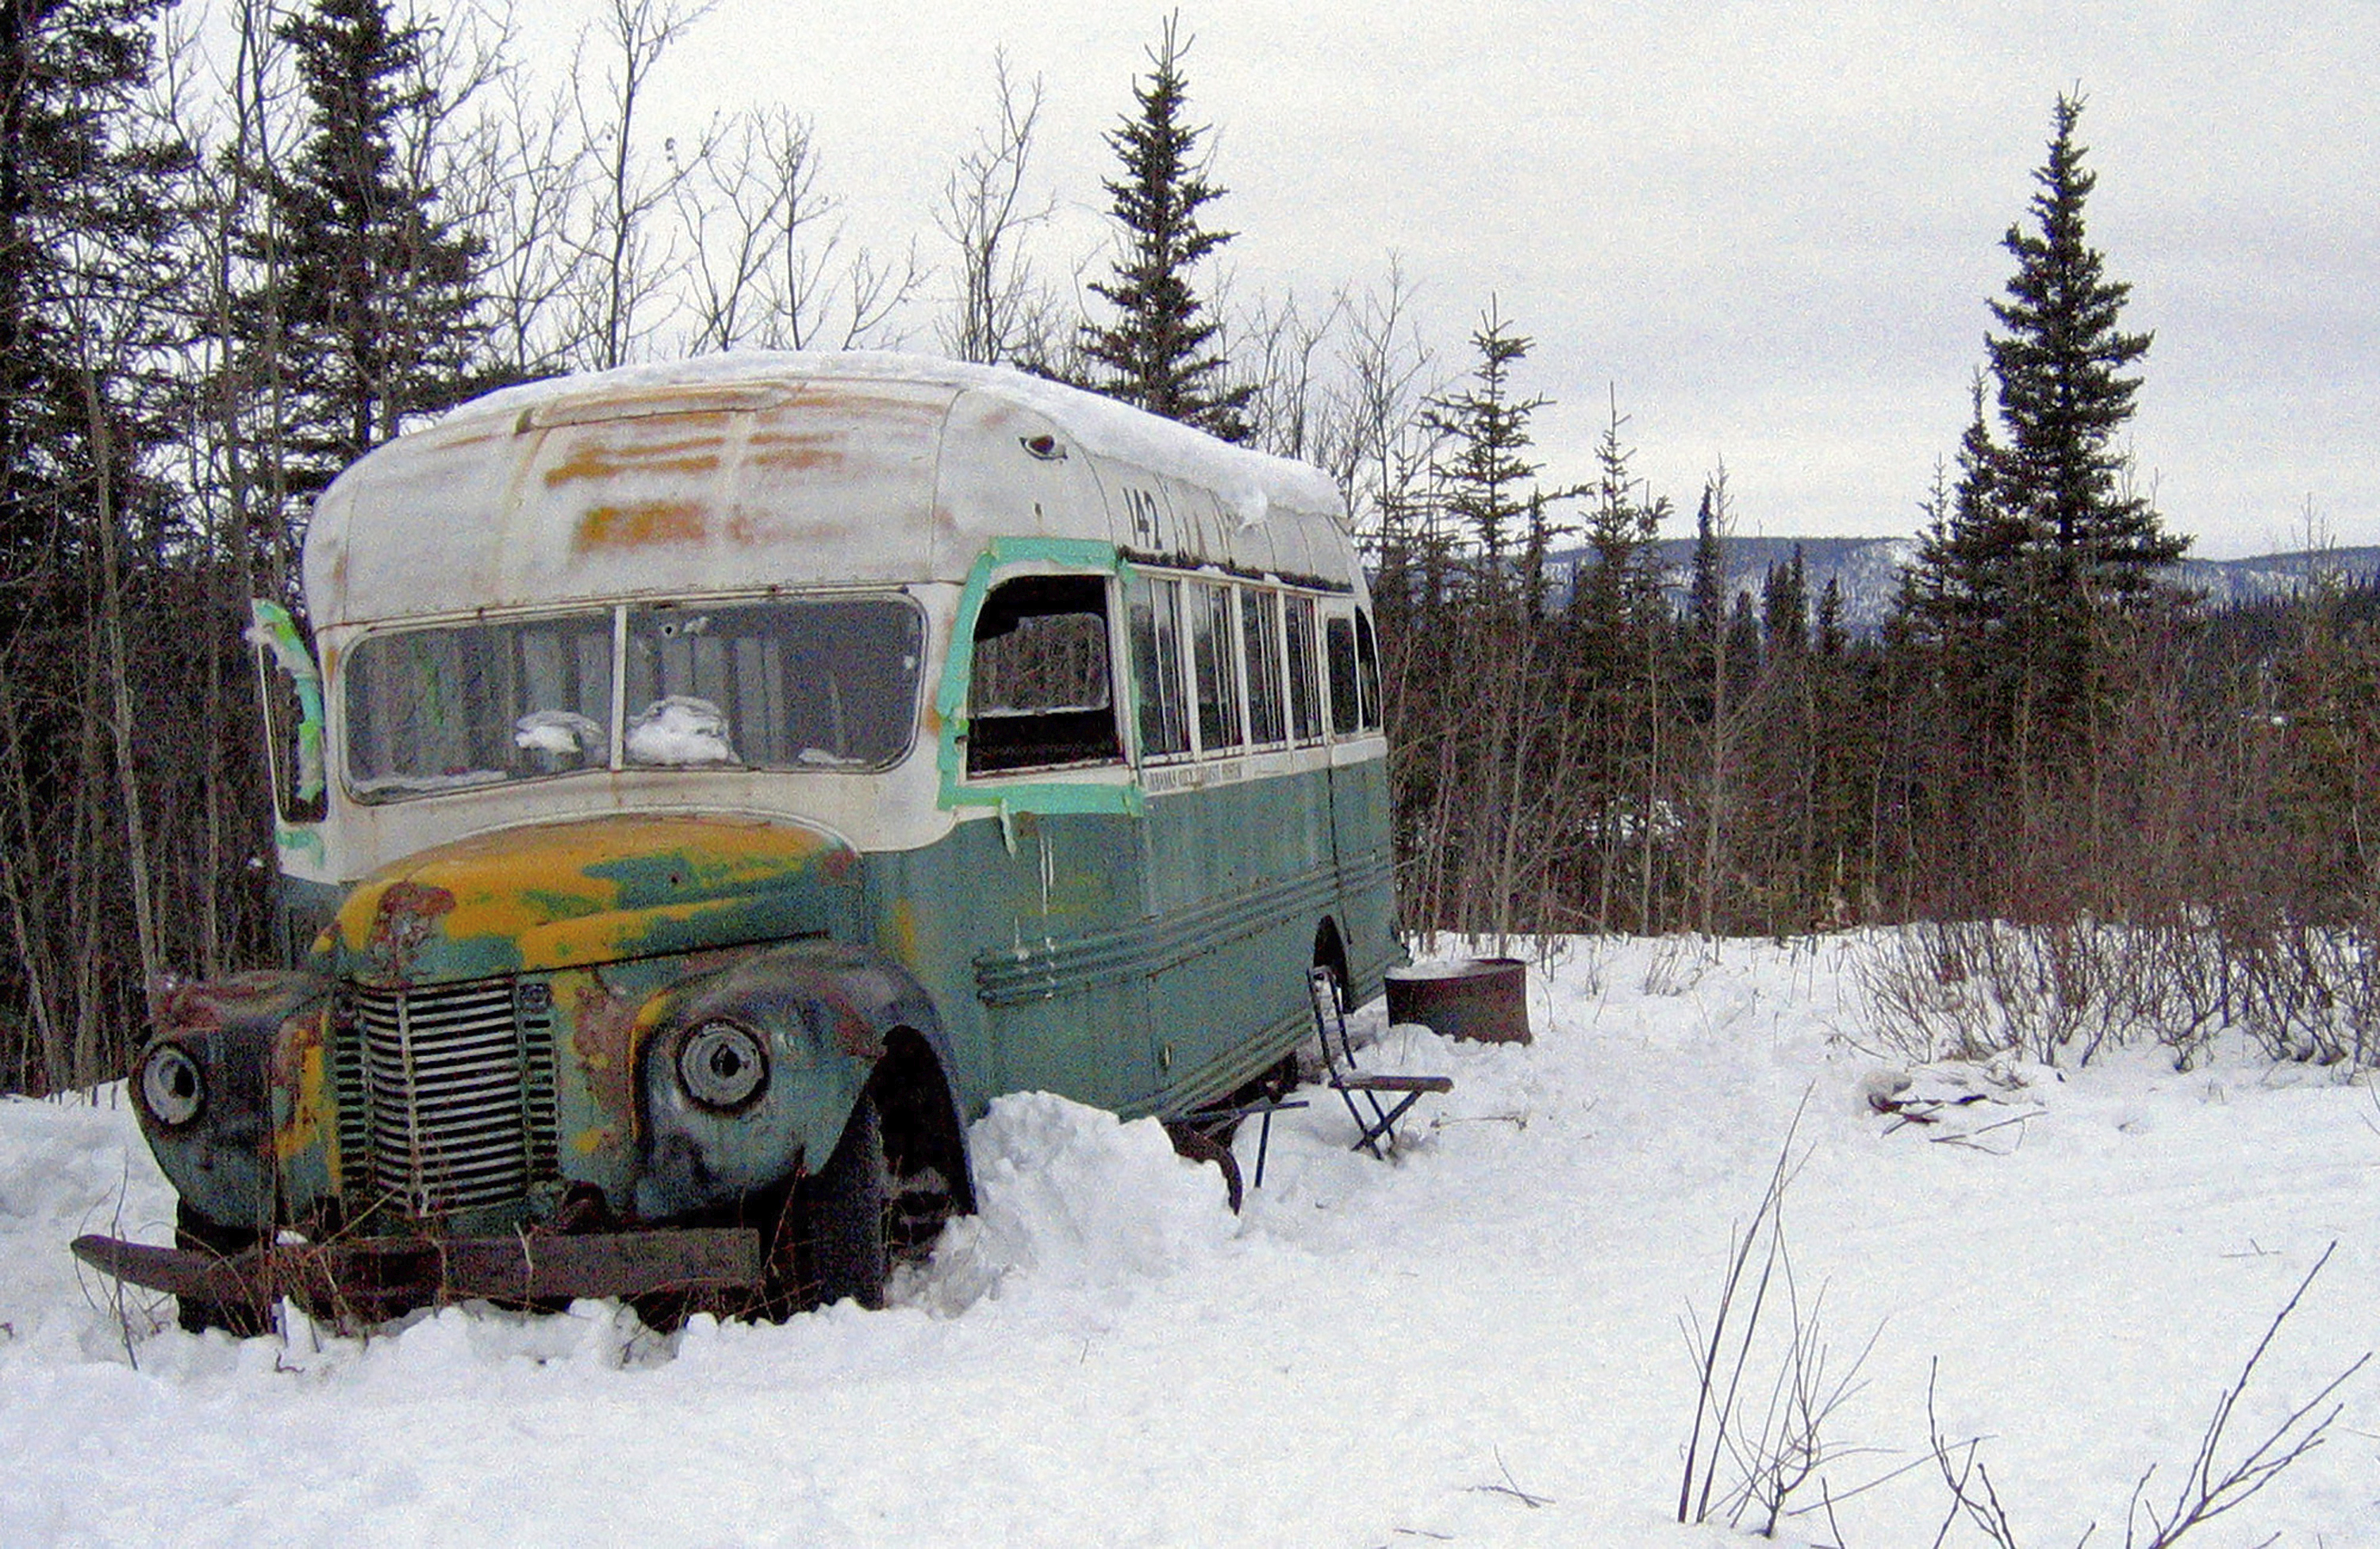 Italian hikers rescued in Alaska after visiting infamous bus